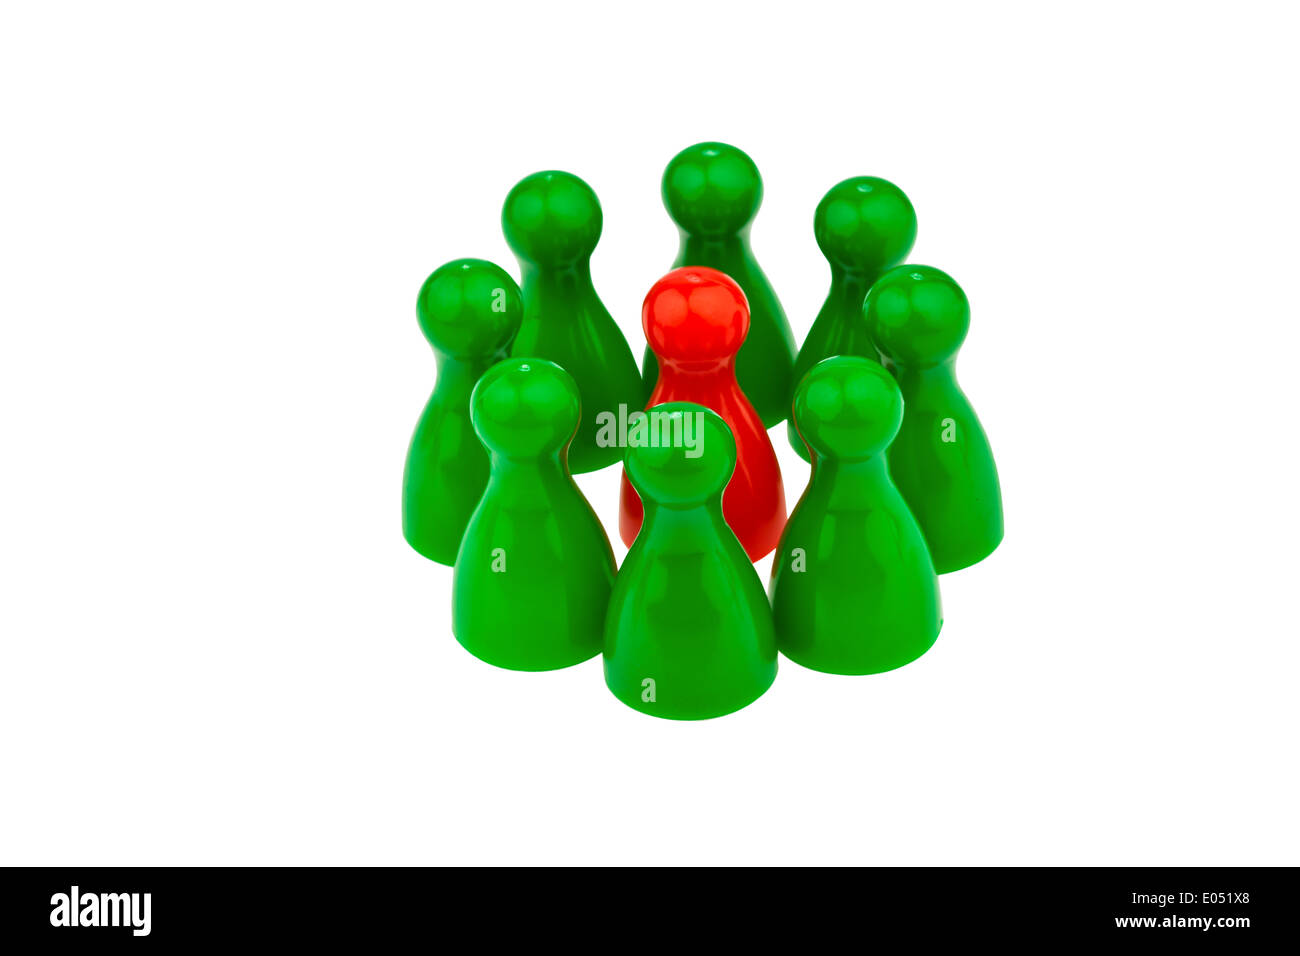 Red and green play figures. Differently in the team. Women's rate in the job., Rote und gruene Spielfiguren. Anders im Team. Fra - Stock Image